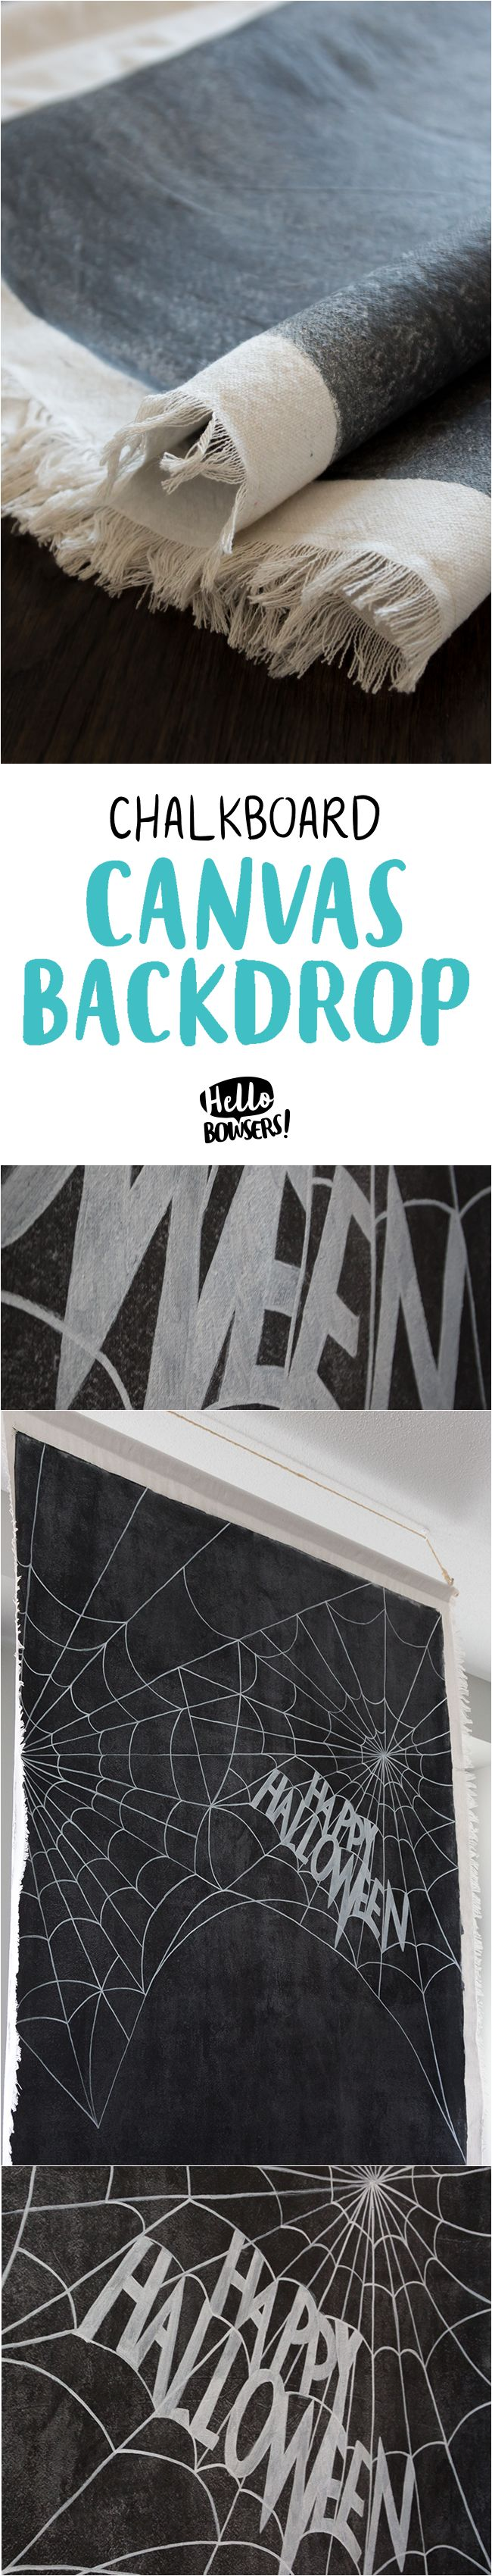 A giant 6×9 foot chalkboard canvas that can be written on, rewritten on, rolled up, stored, toted around, shared, relocated, repurposed…..you get the idea. It's amazing